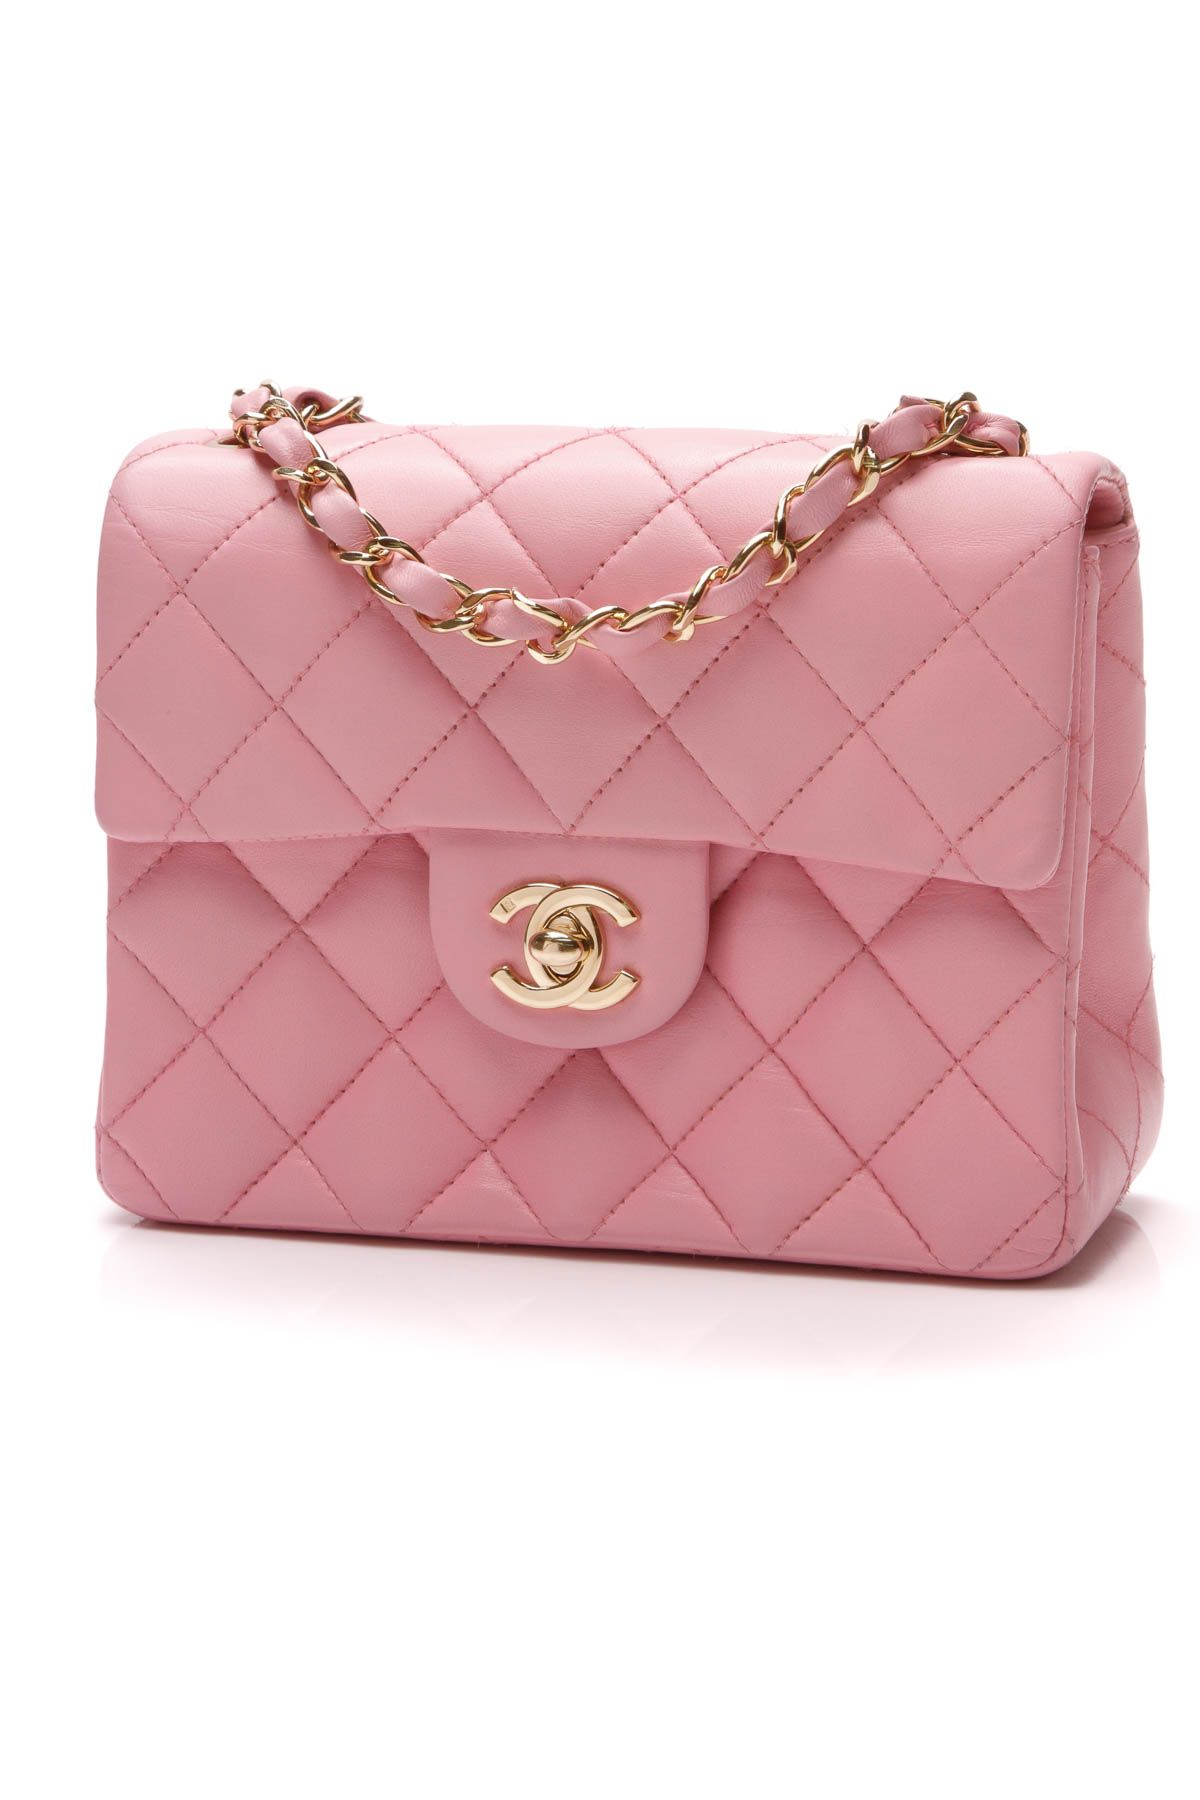 b061ebb725f6 Chanel Classic Flap Bag - Mini Pink Lambskin | Crazy for Coco ...